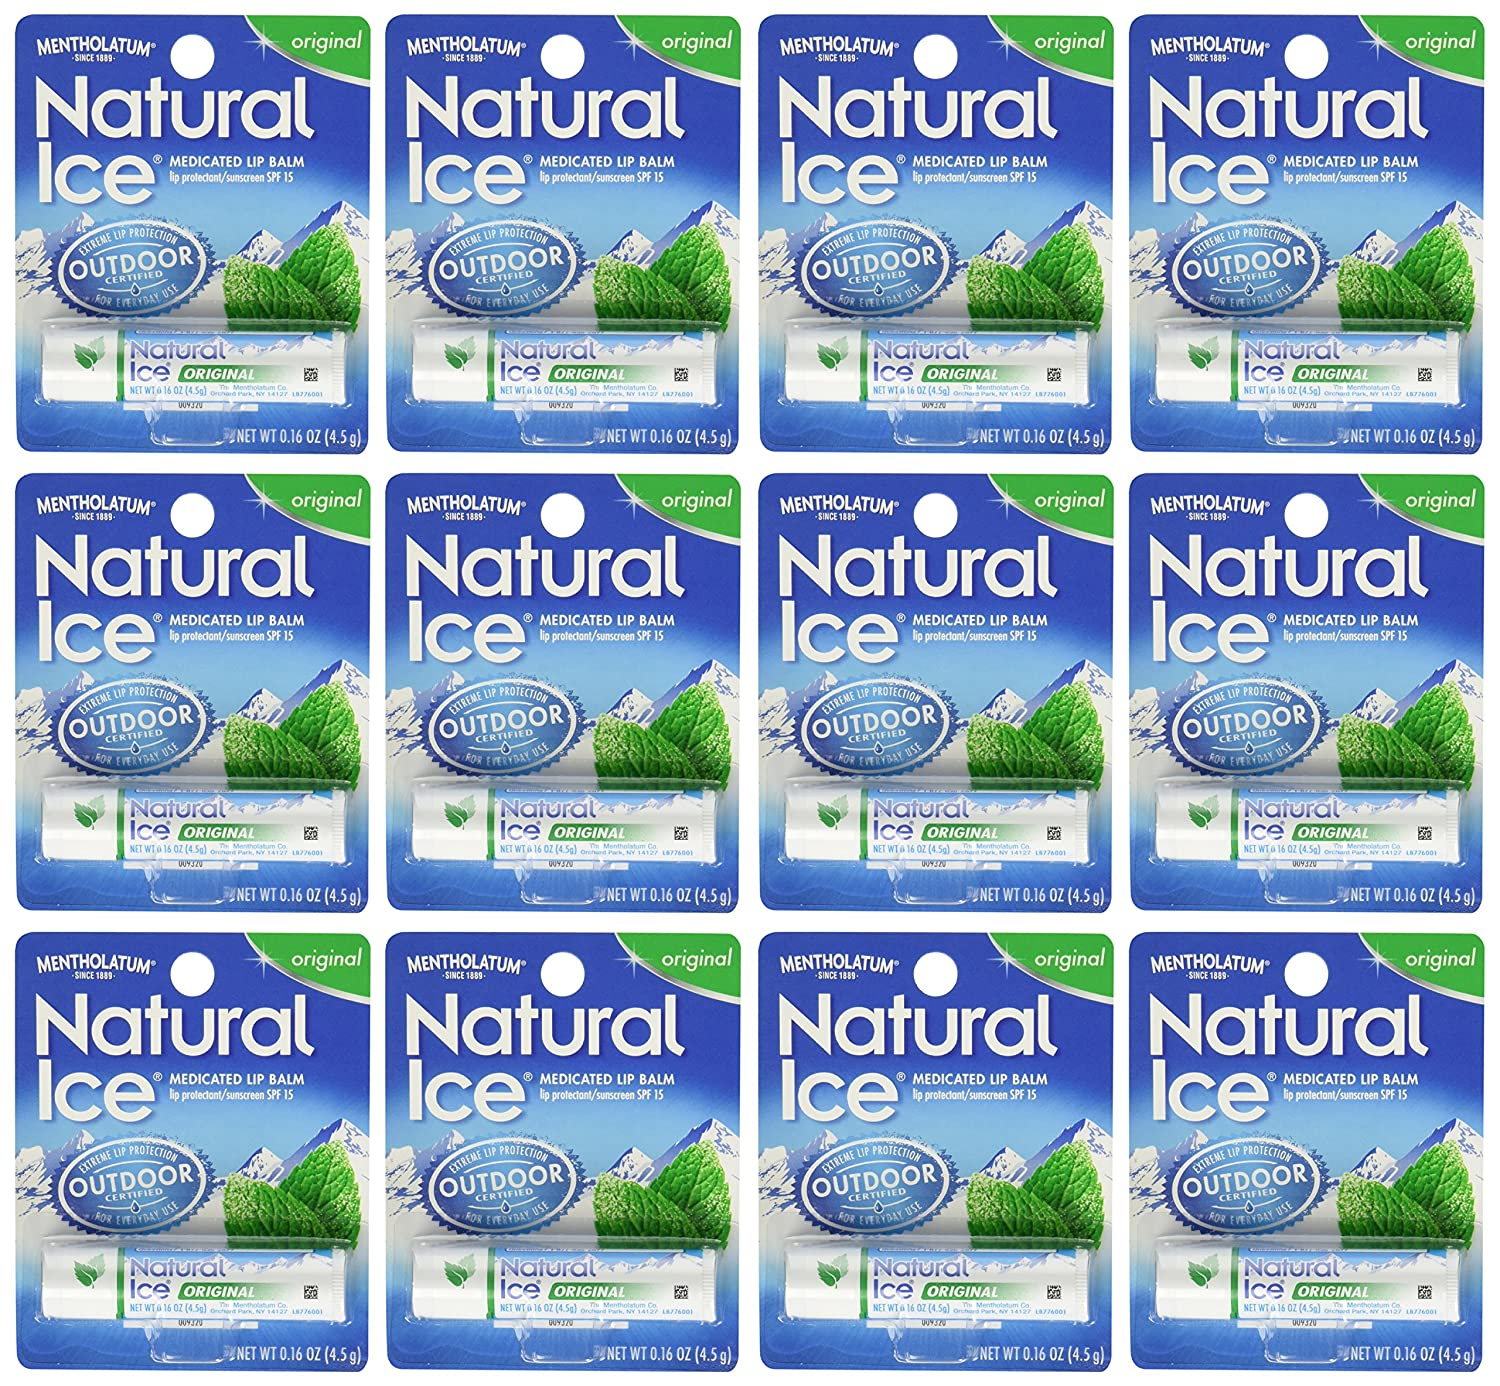 Mentholatum Natural Ice Medicated Lip Protectant Sunscreen, 12 Count Everready First Aid MEN000041-X12